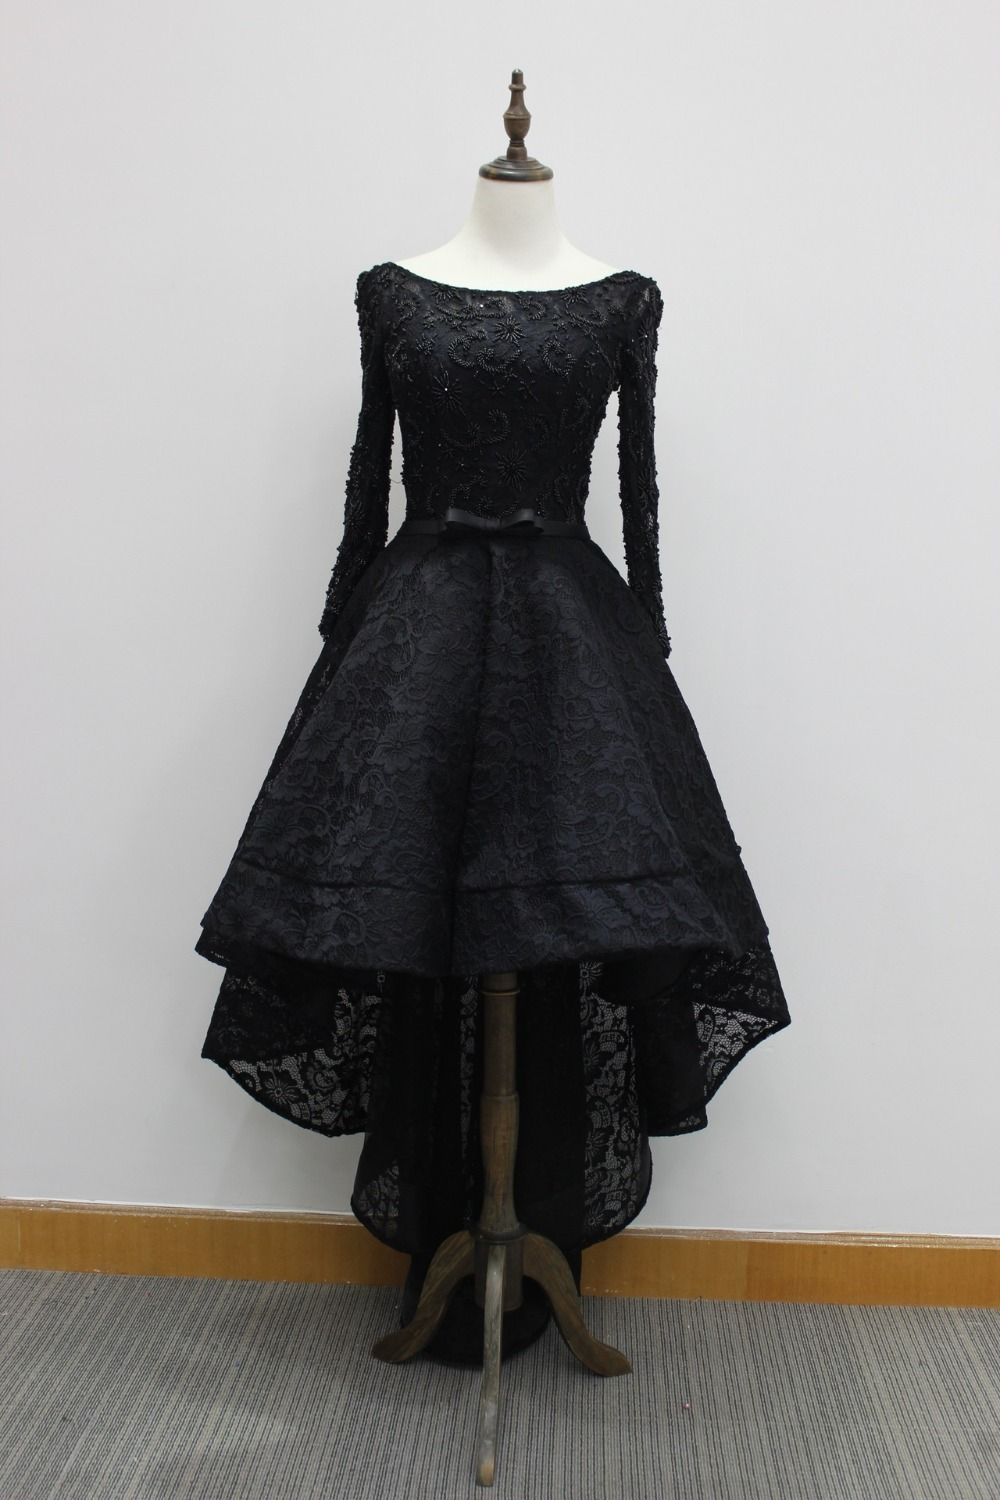 Black dress for prom night - Elegant Lace Long Sleeve Evening Gown Short Front Long Back Black Prom Party Dresses Open Back